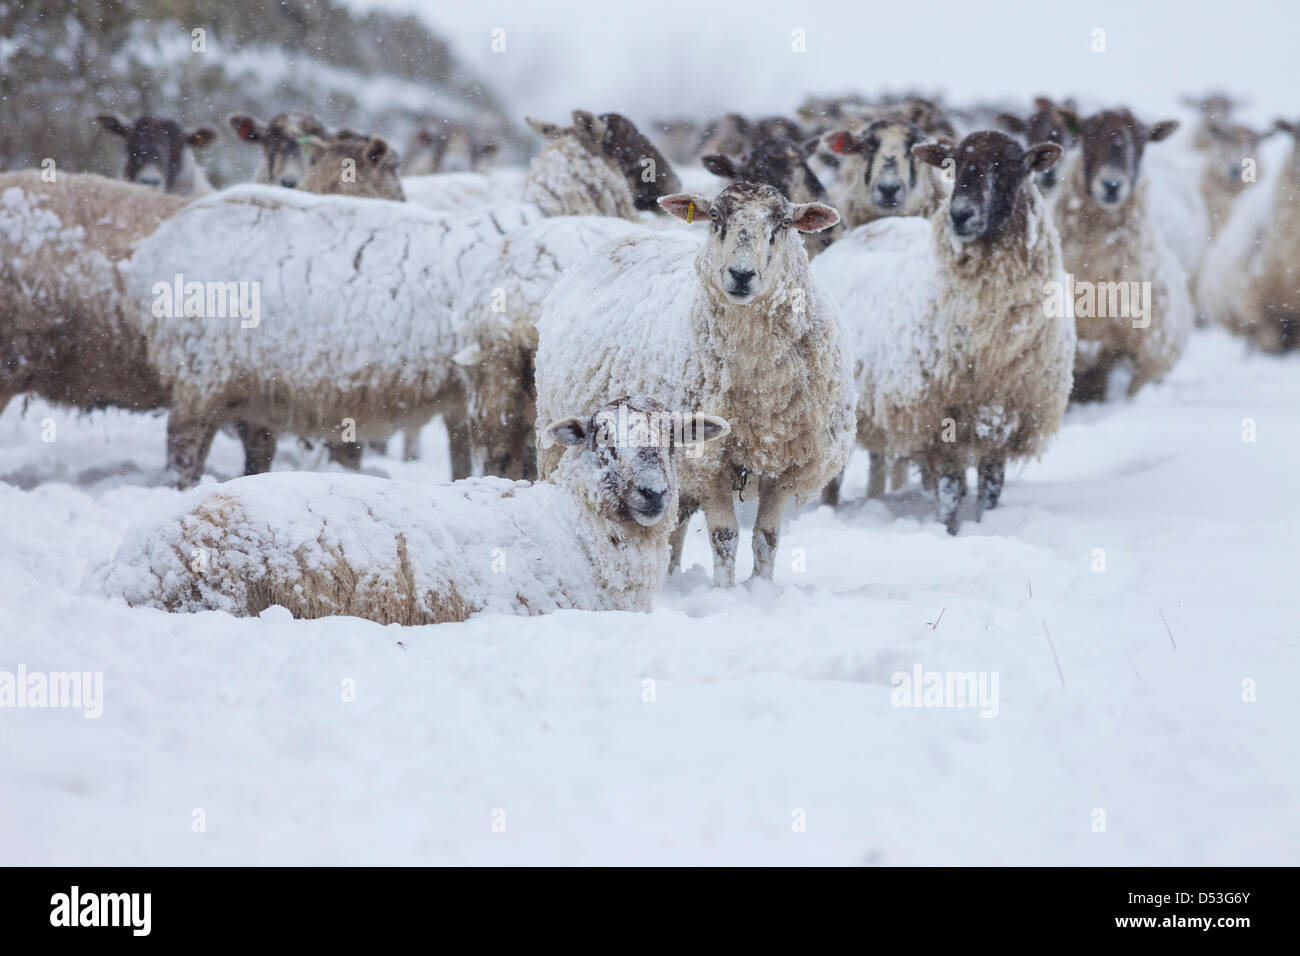 Teesdale, County Durham UK. 23rd March 2013 Sheep coping with the heavy snowfall and blizzards that hit the area - Stock Image